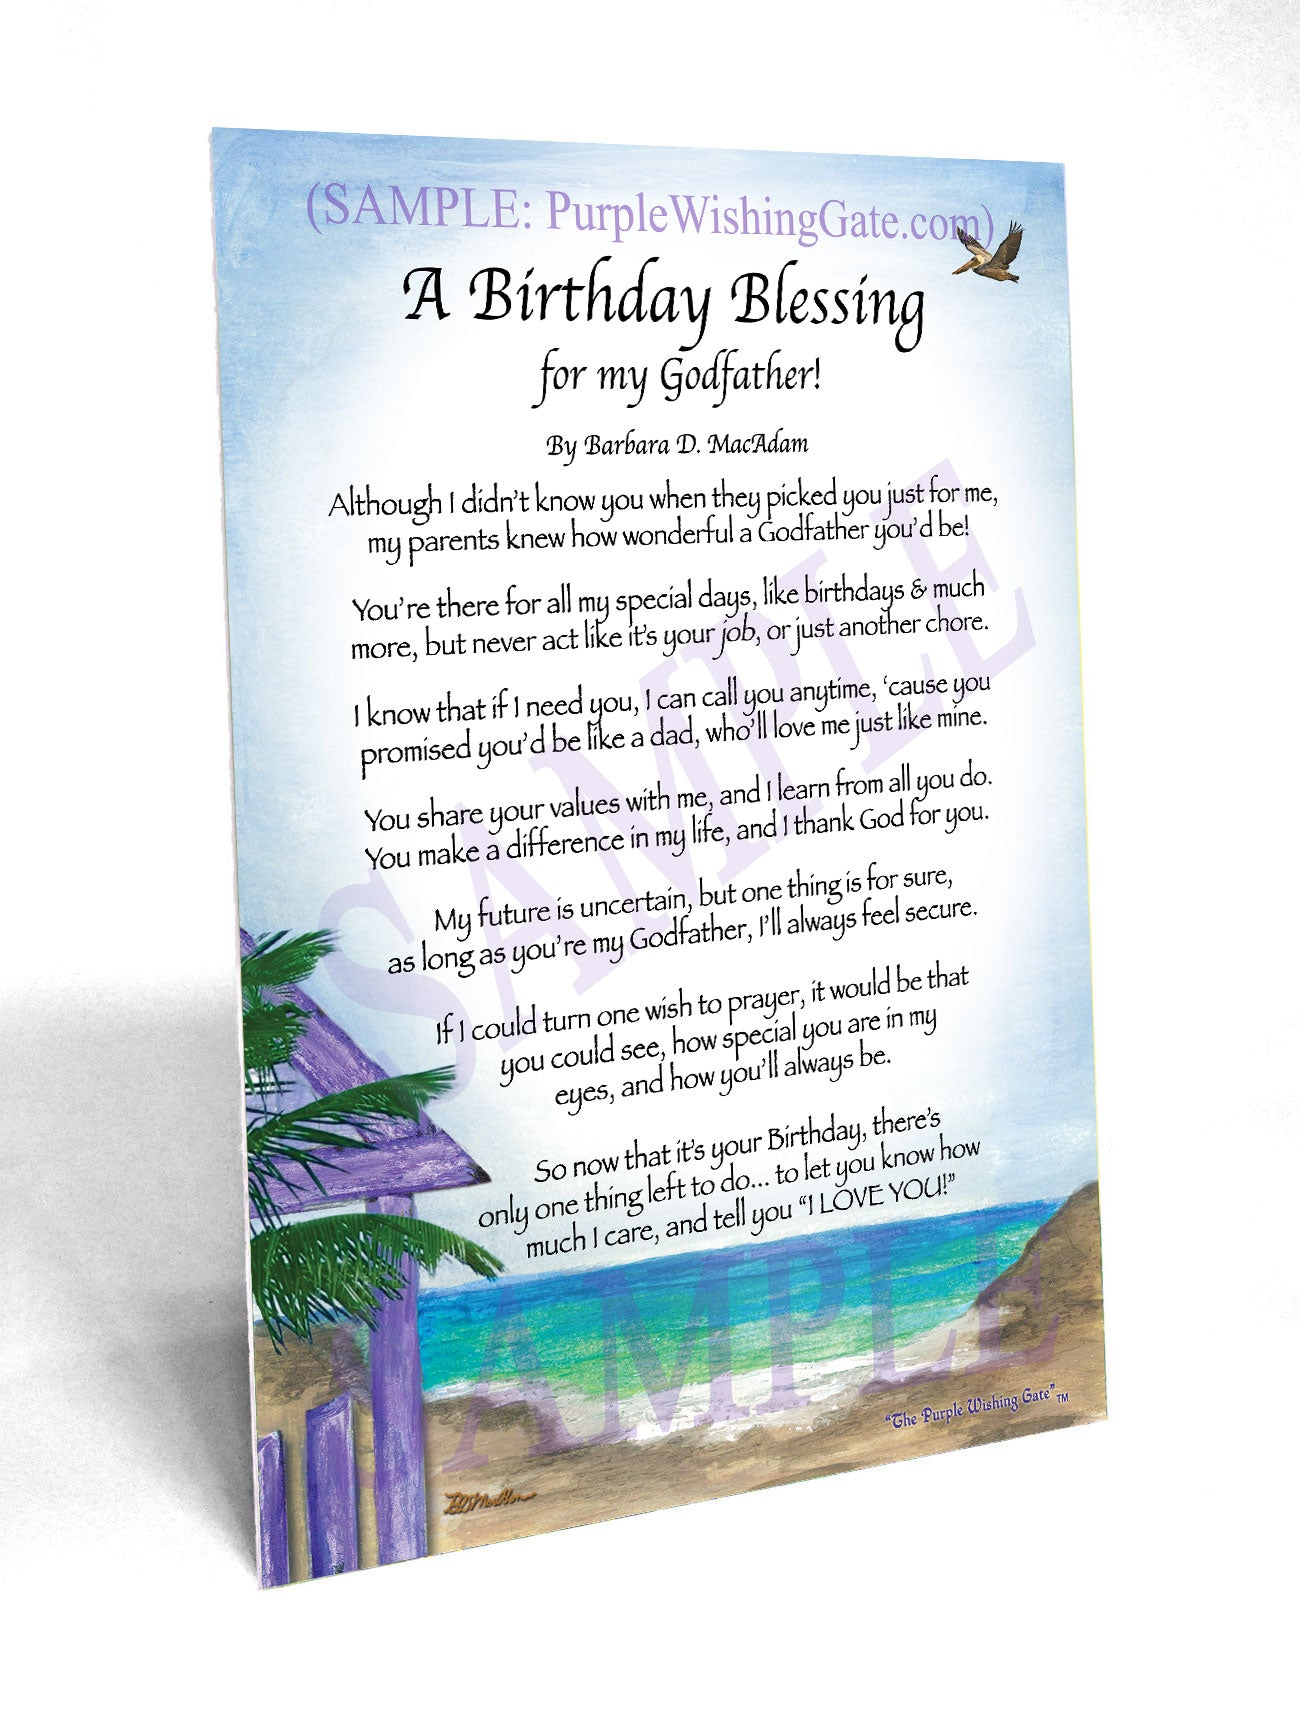 A Birthday Blessing for my Godfather! - Birthday Gift - PurpleWishingGate.com